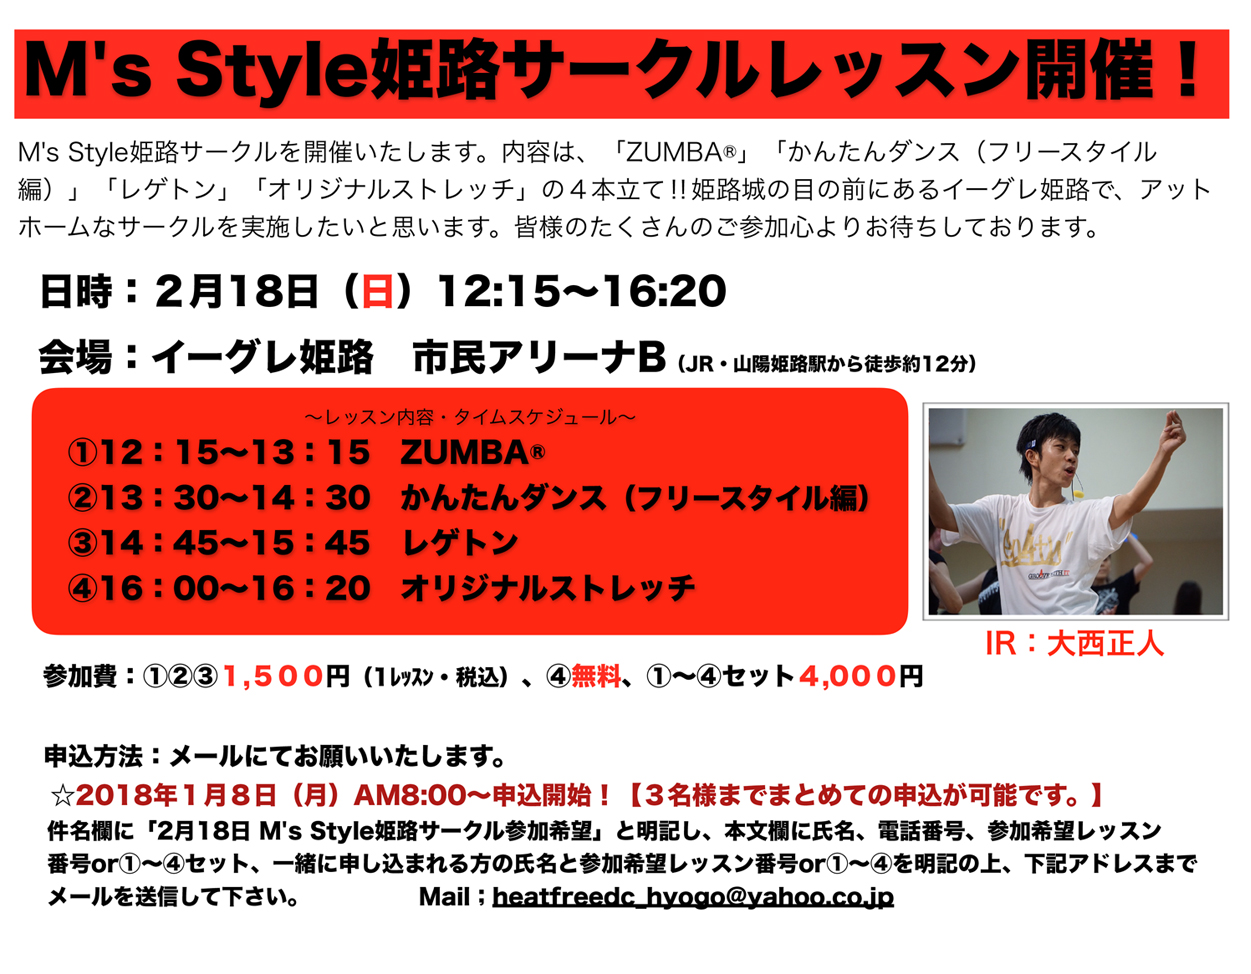 【2018/2/18】M's Style姫路サークル再始動!